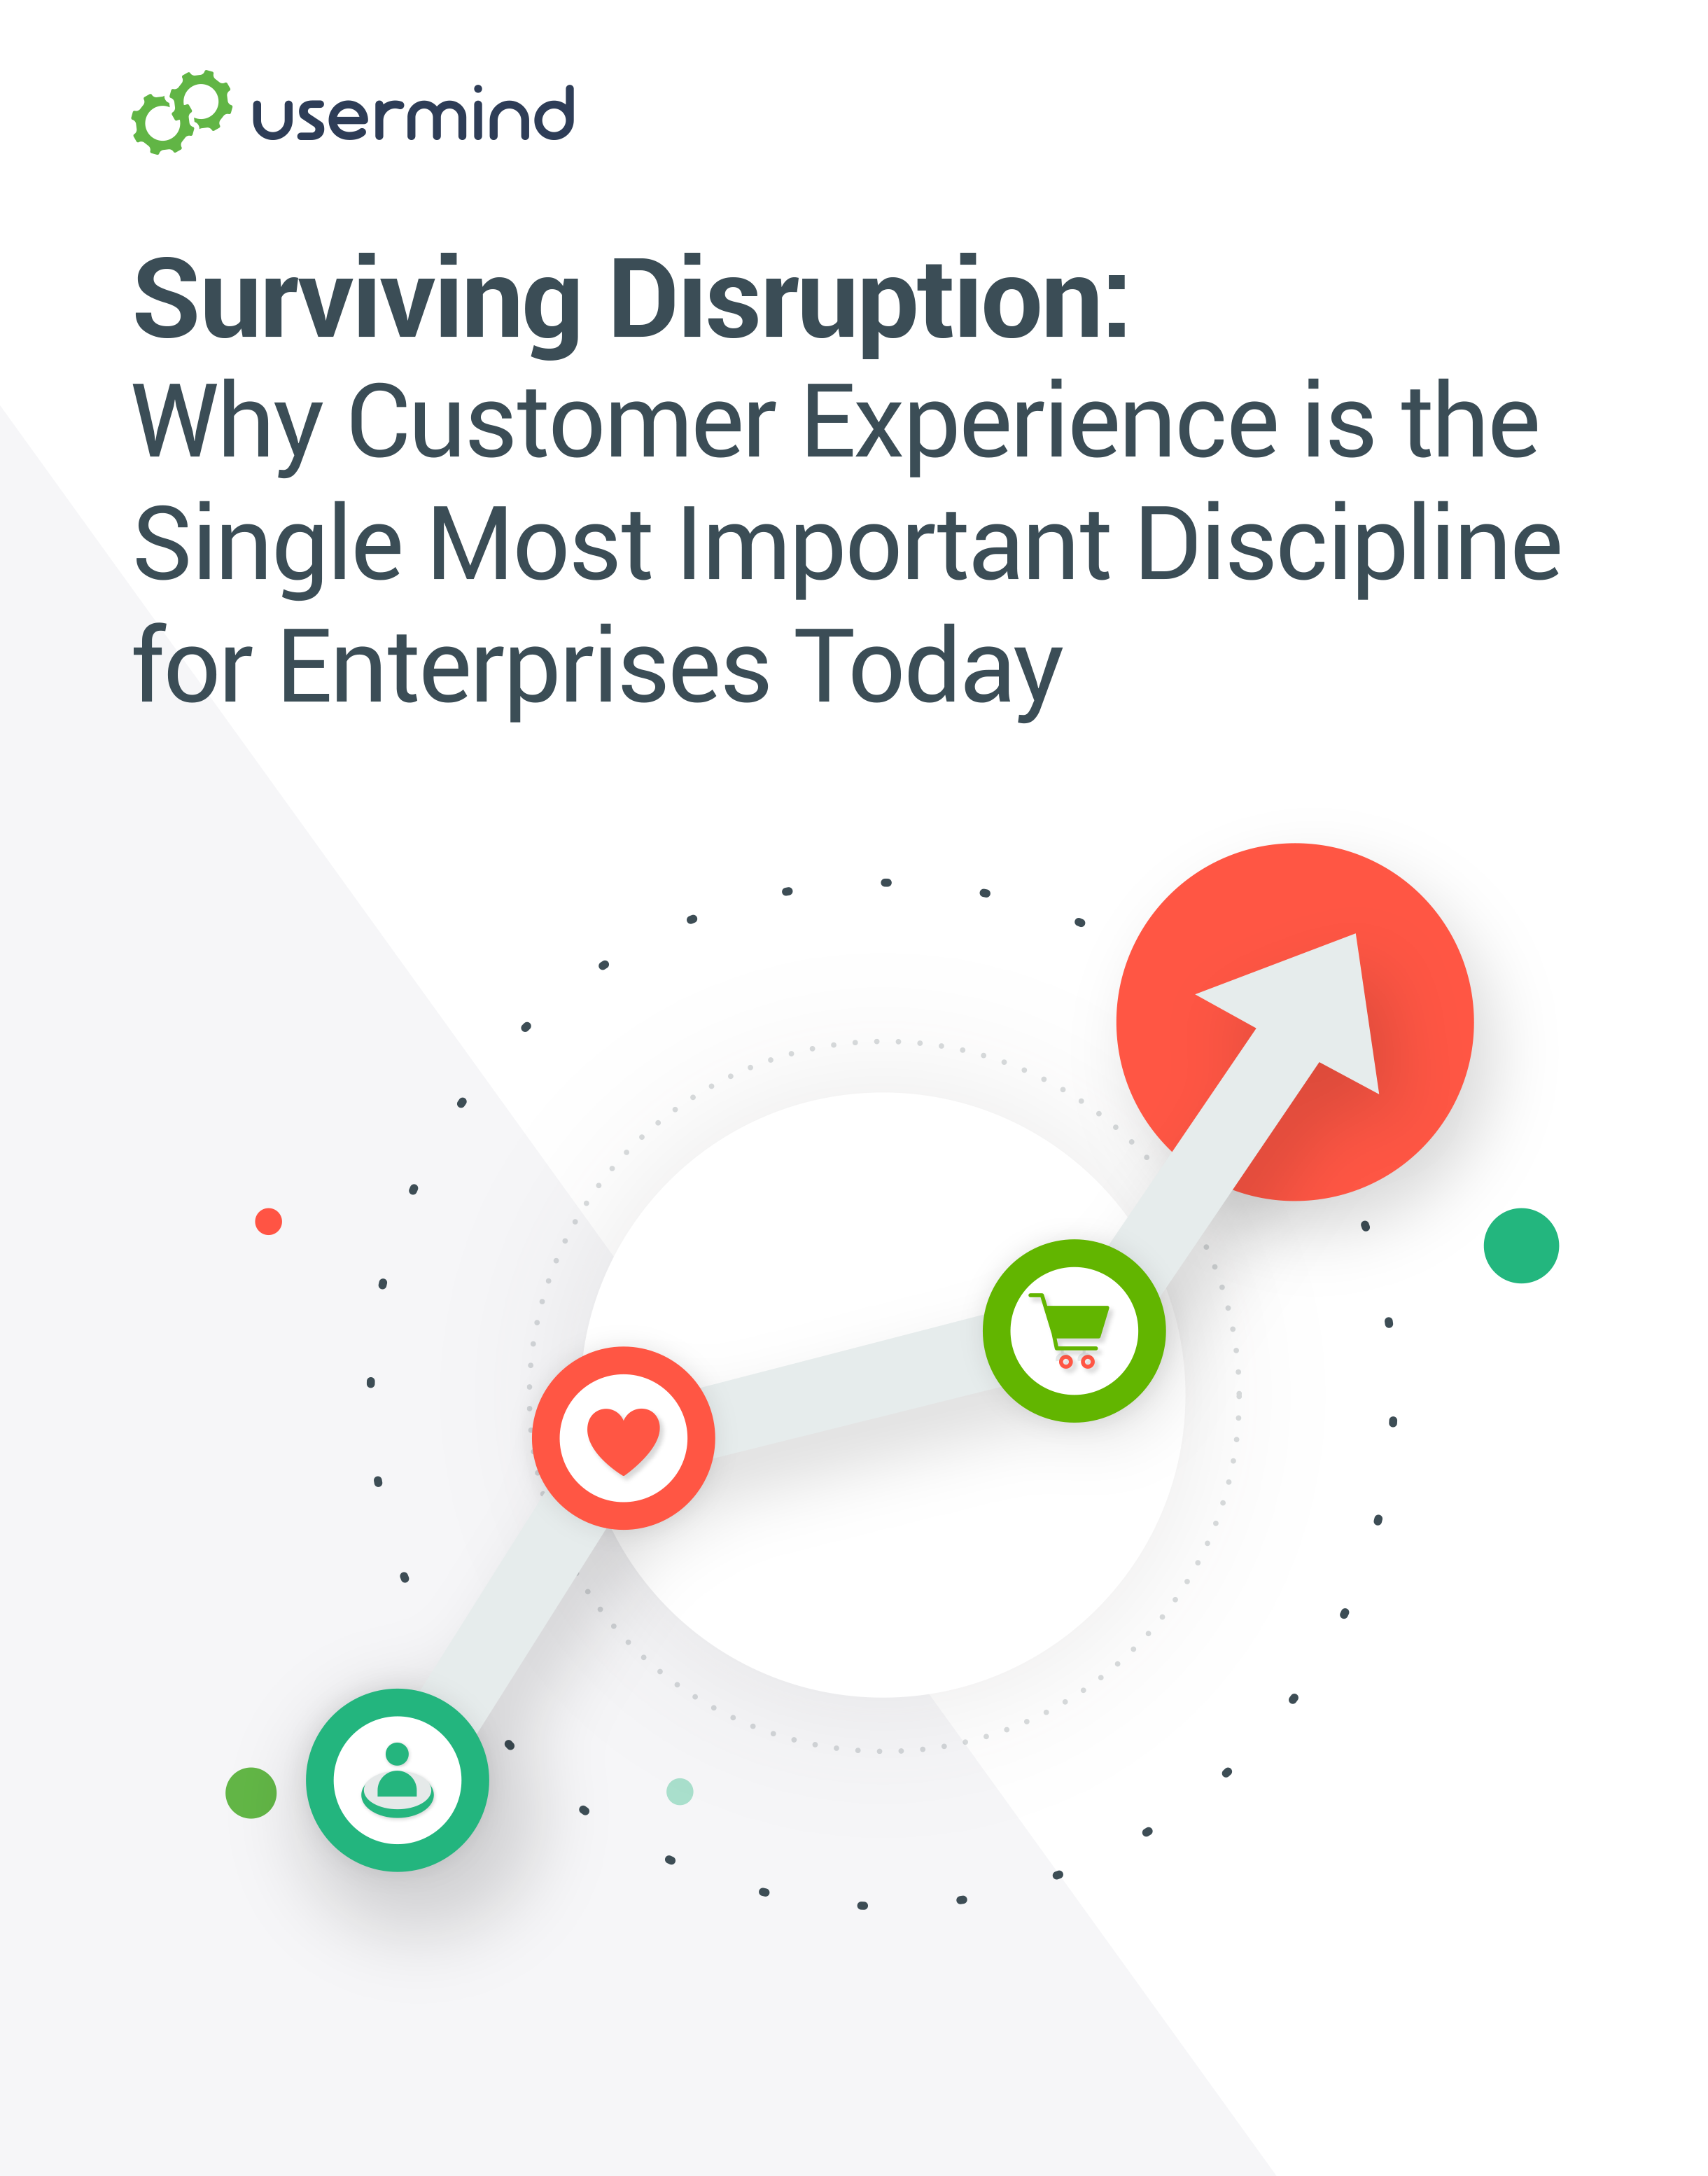 Surviving Disruption: Why Customer Experience is the single most important discipline for enterprises today